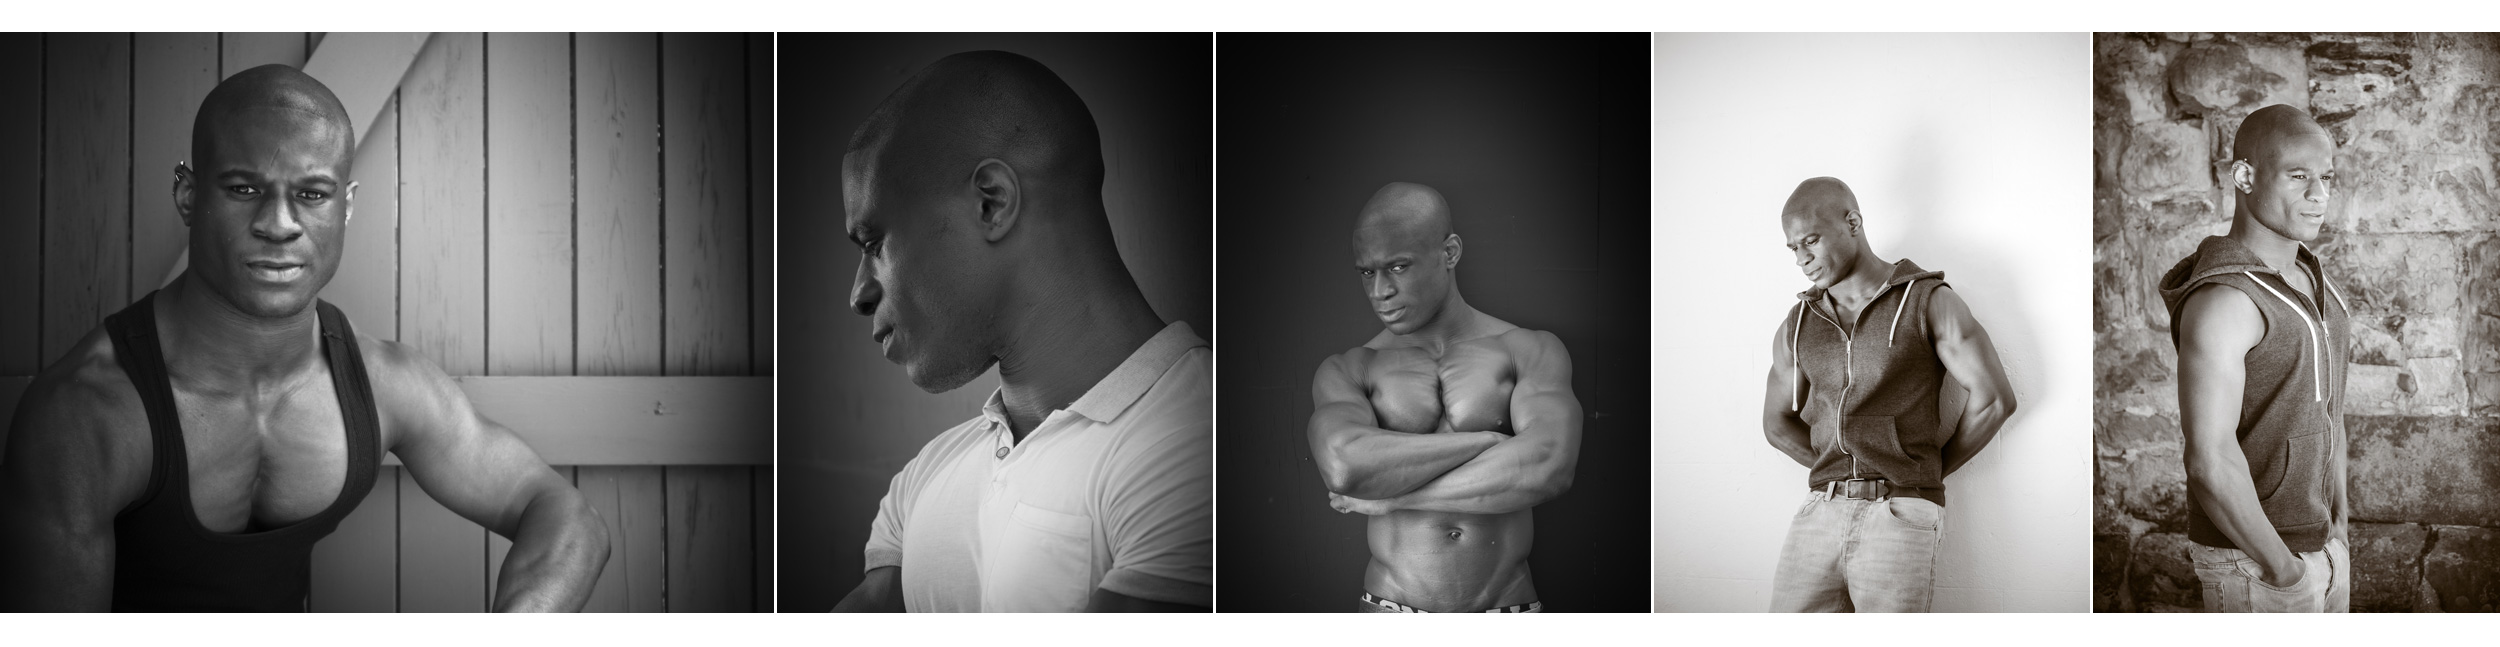 male boudoir photography sussex and surrey